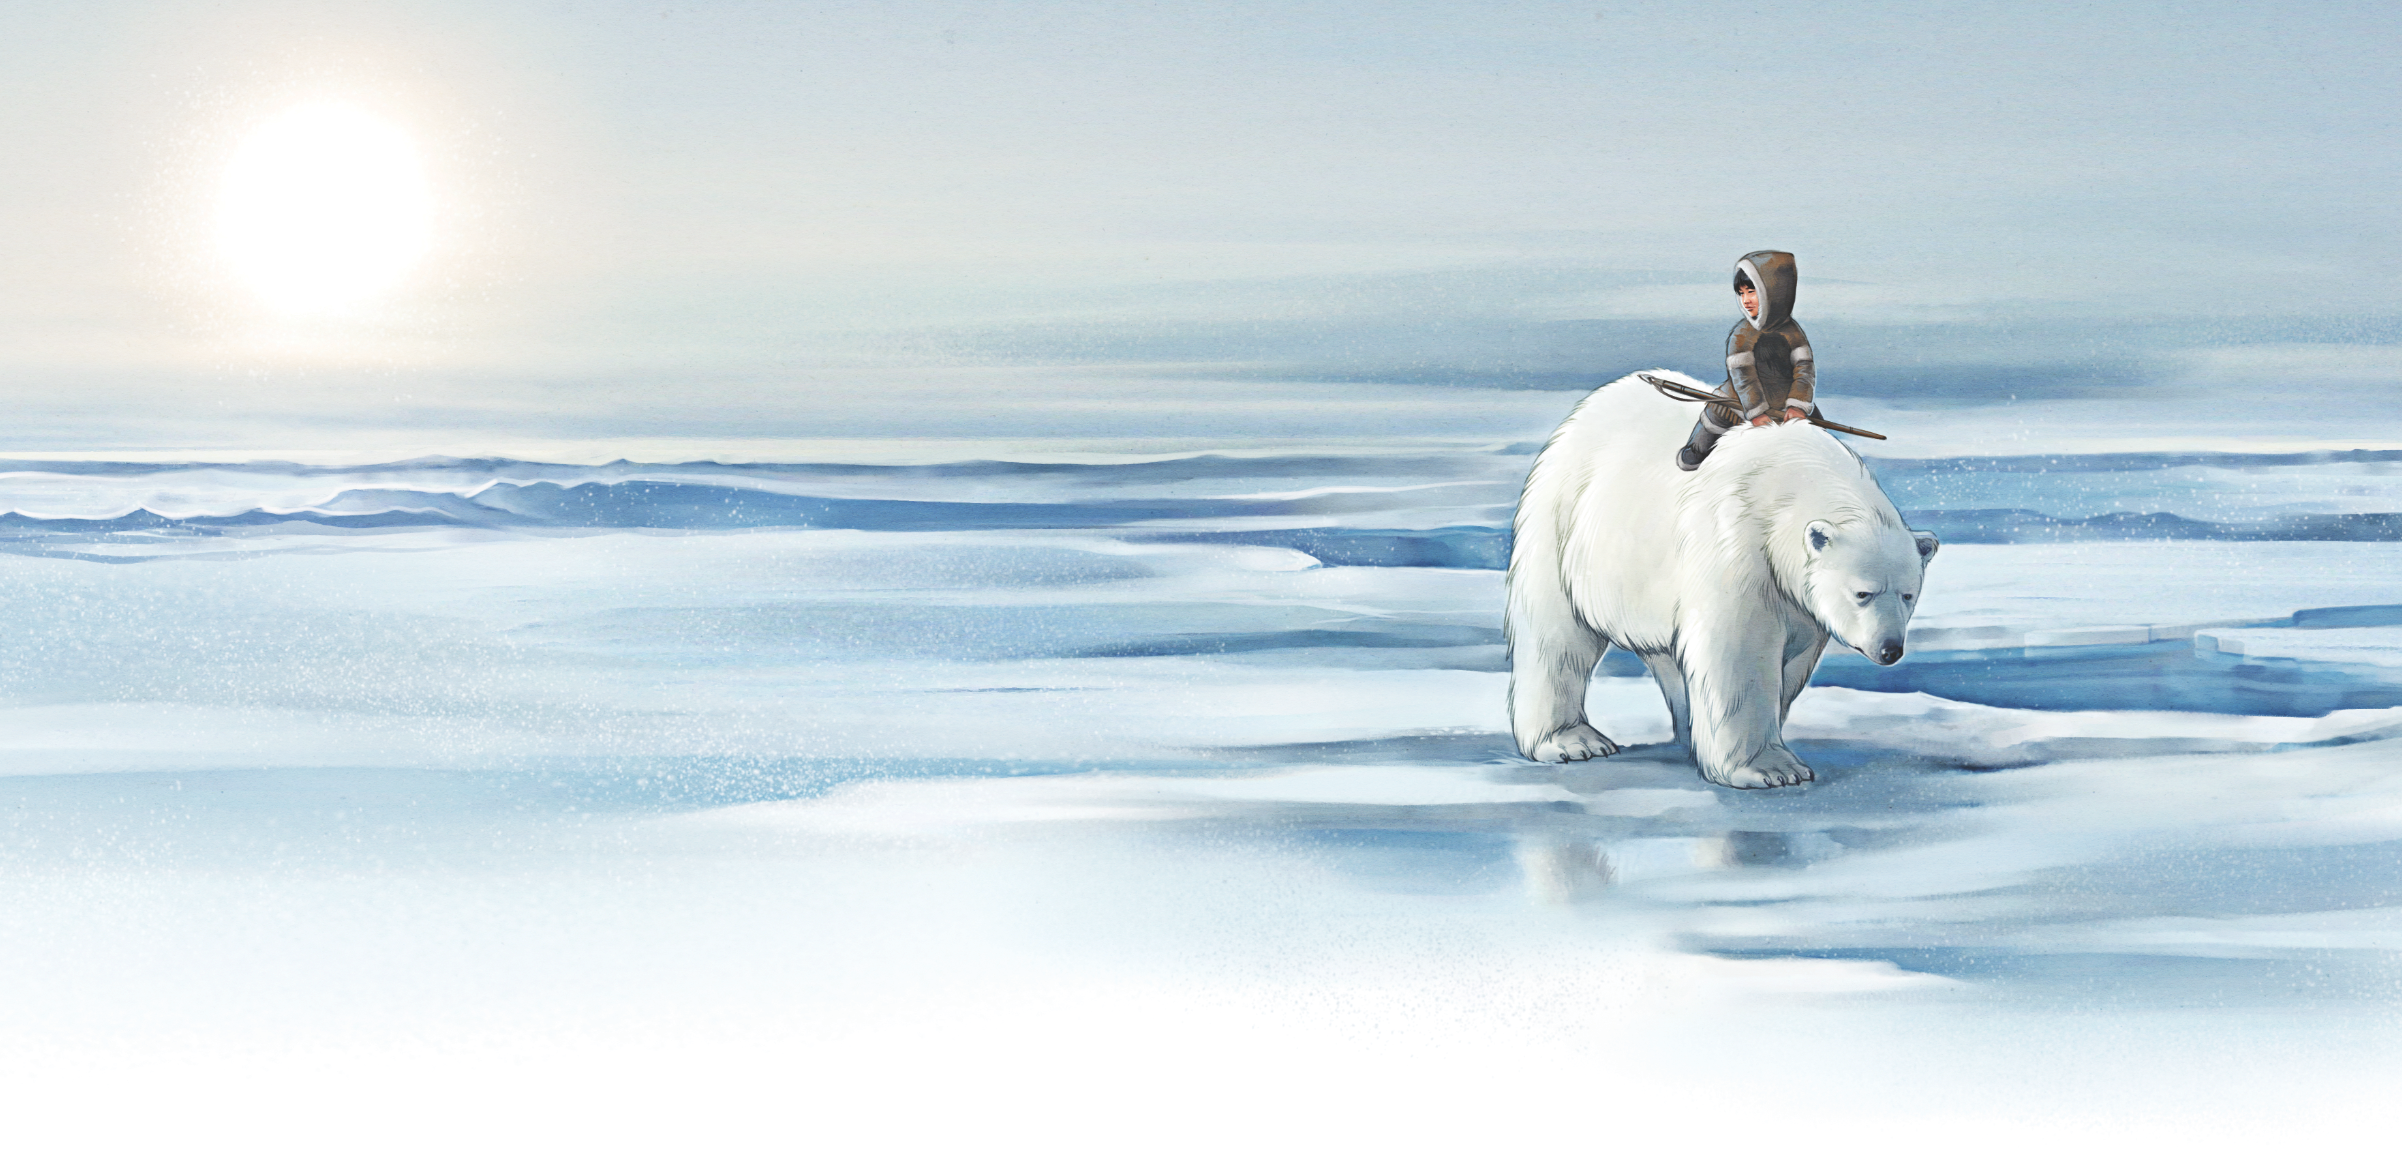 In THE ORPHAN AND THE POLAR BEAR, a neglected orphan is adopted by a polar bear elder. Under the bear's guidance, the little orphan learns the skills he will need to survive and provide for himself.